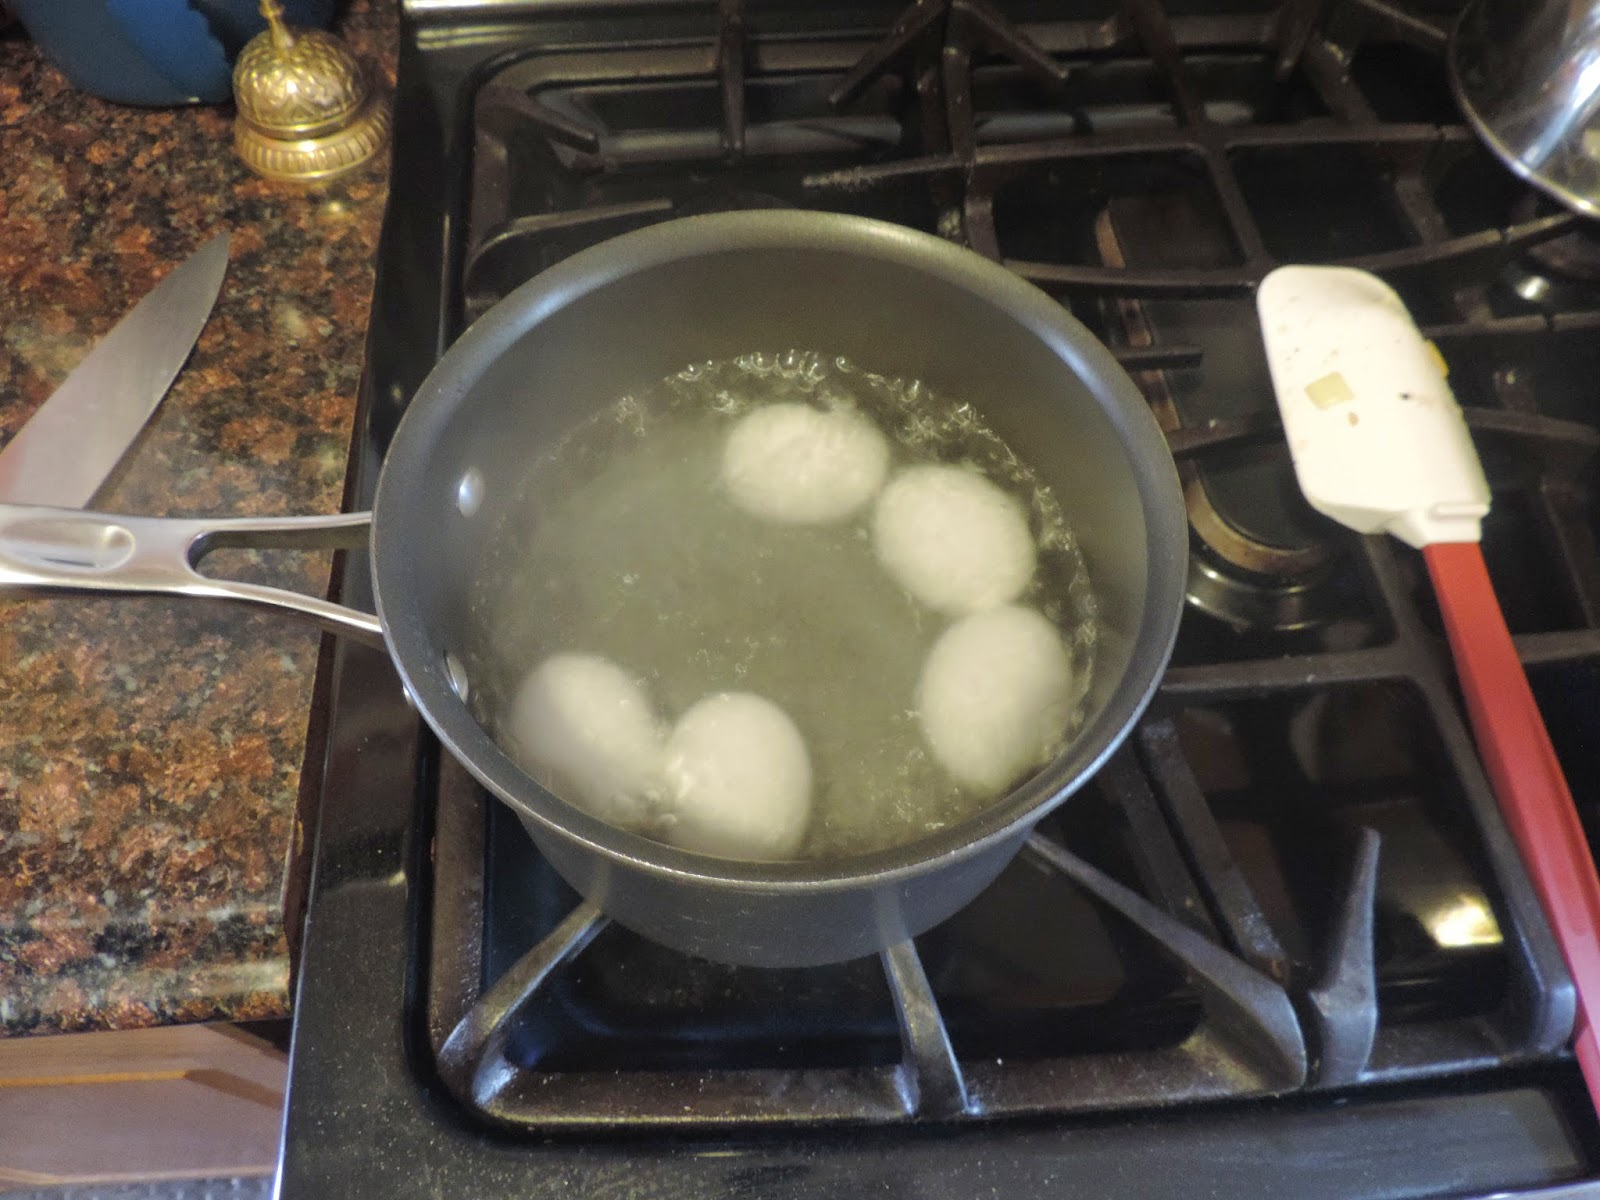 The water with the eggs in it being brought to a boil.